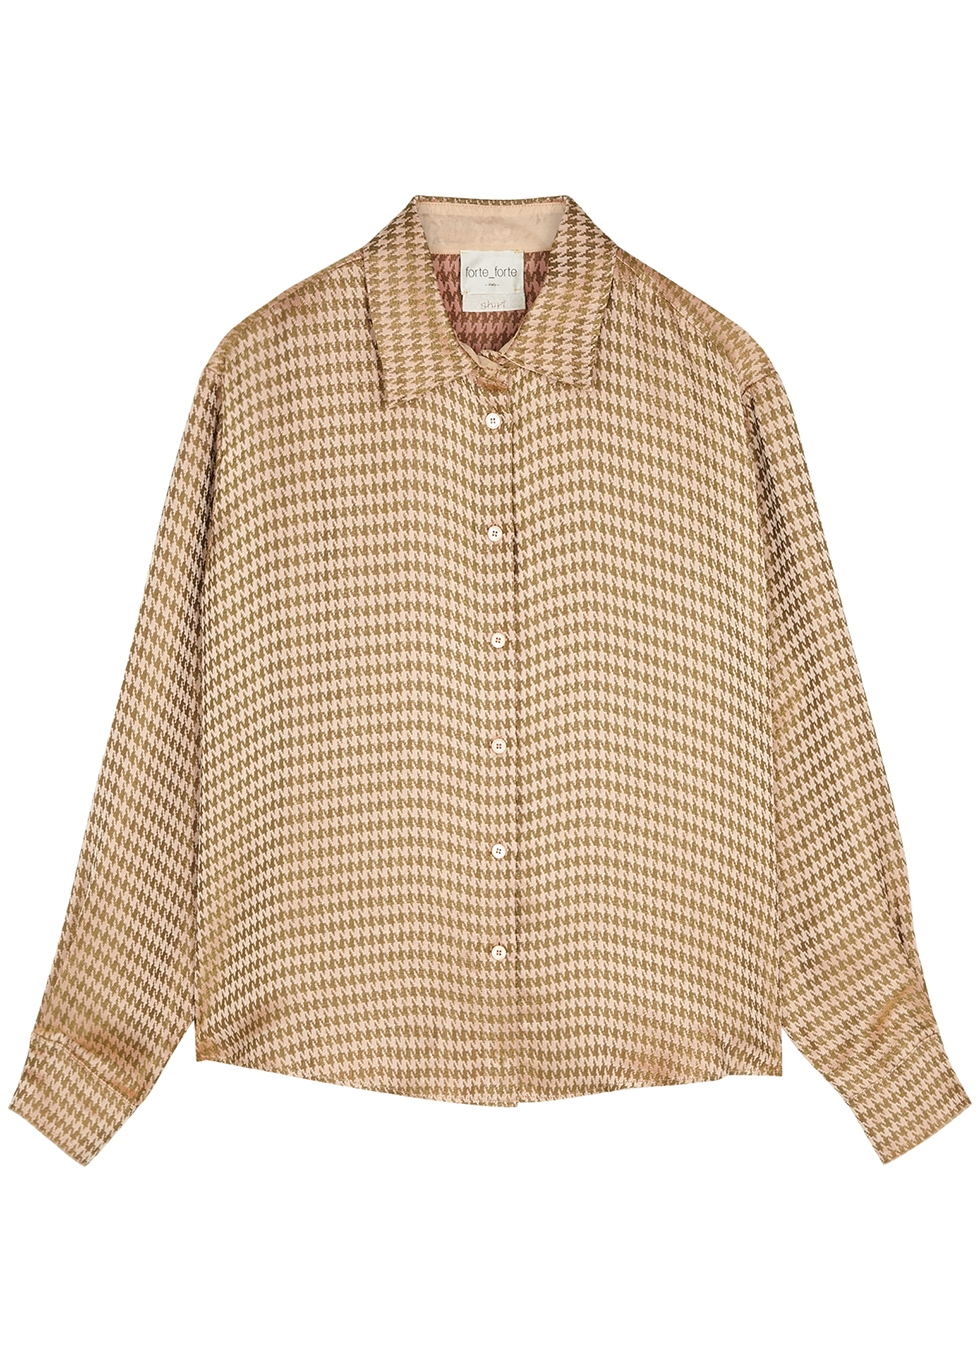 Pink and gold houndstooth-jacquard shirt